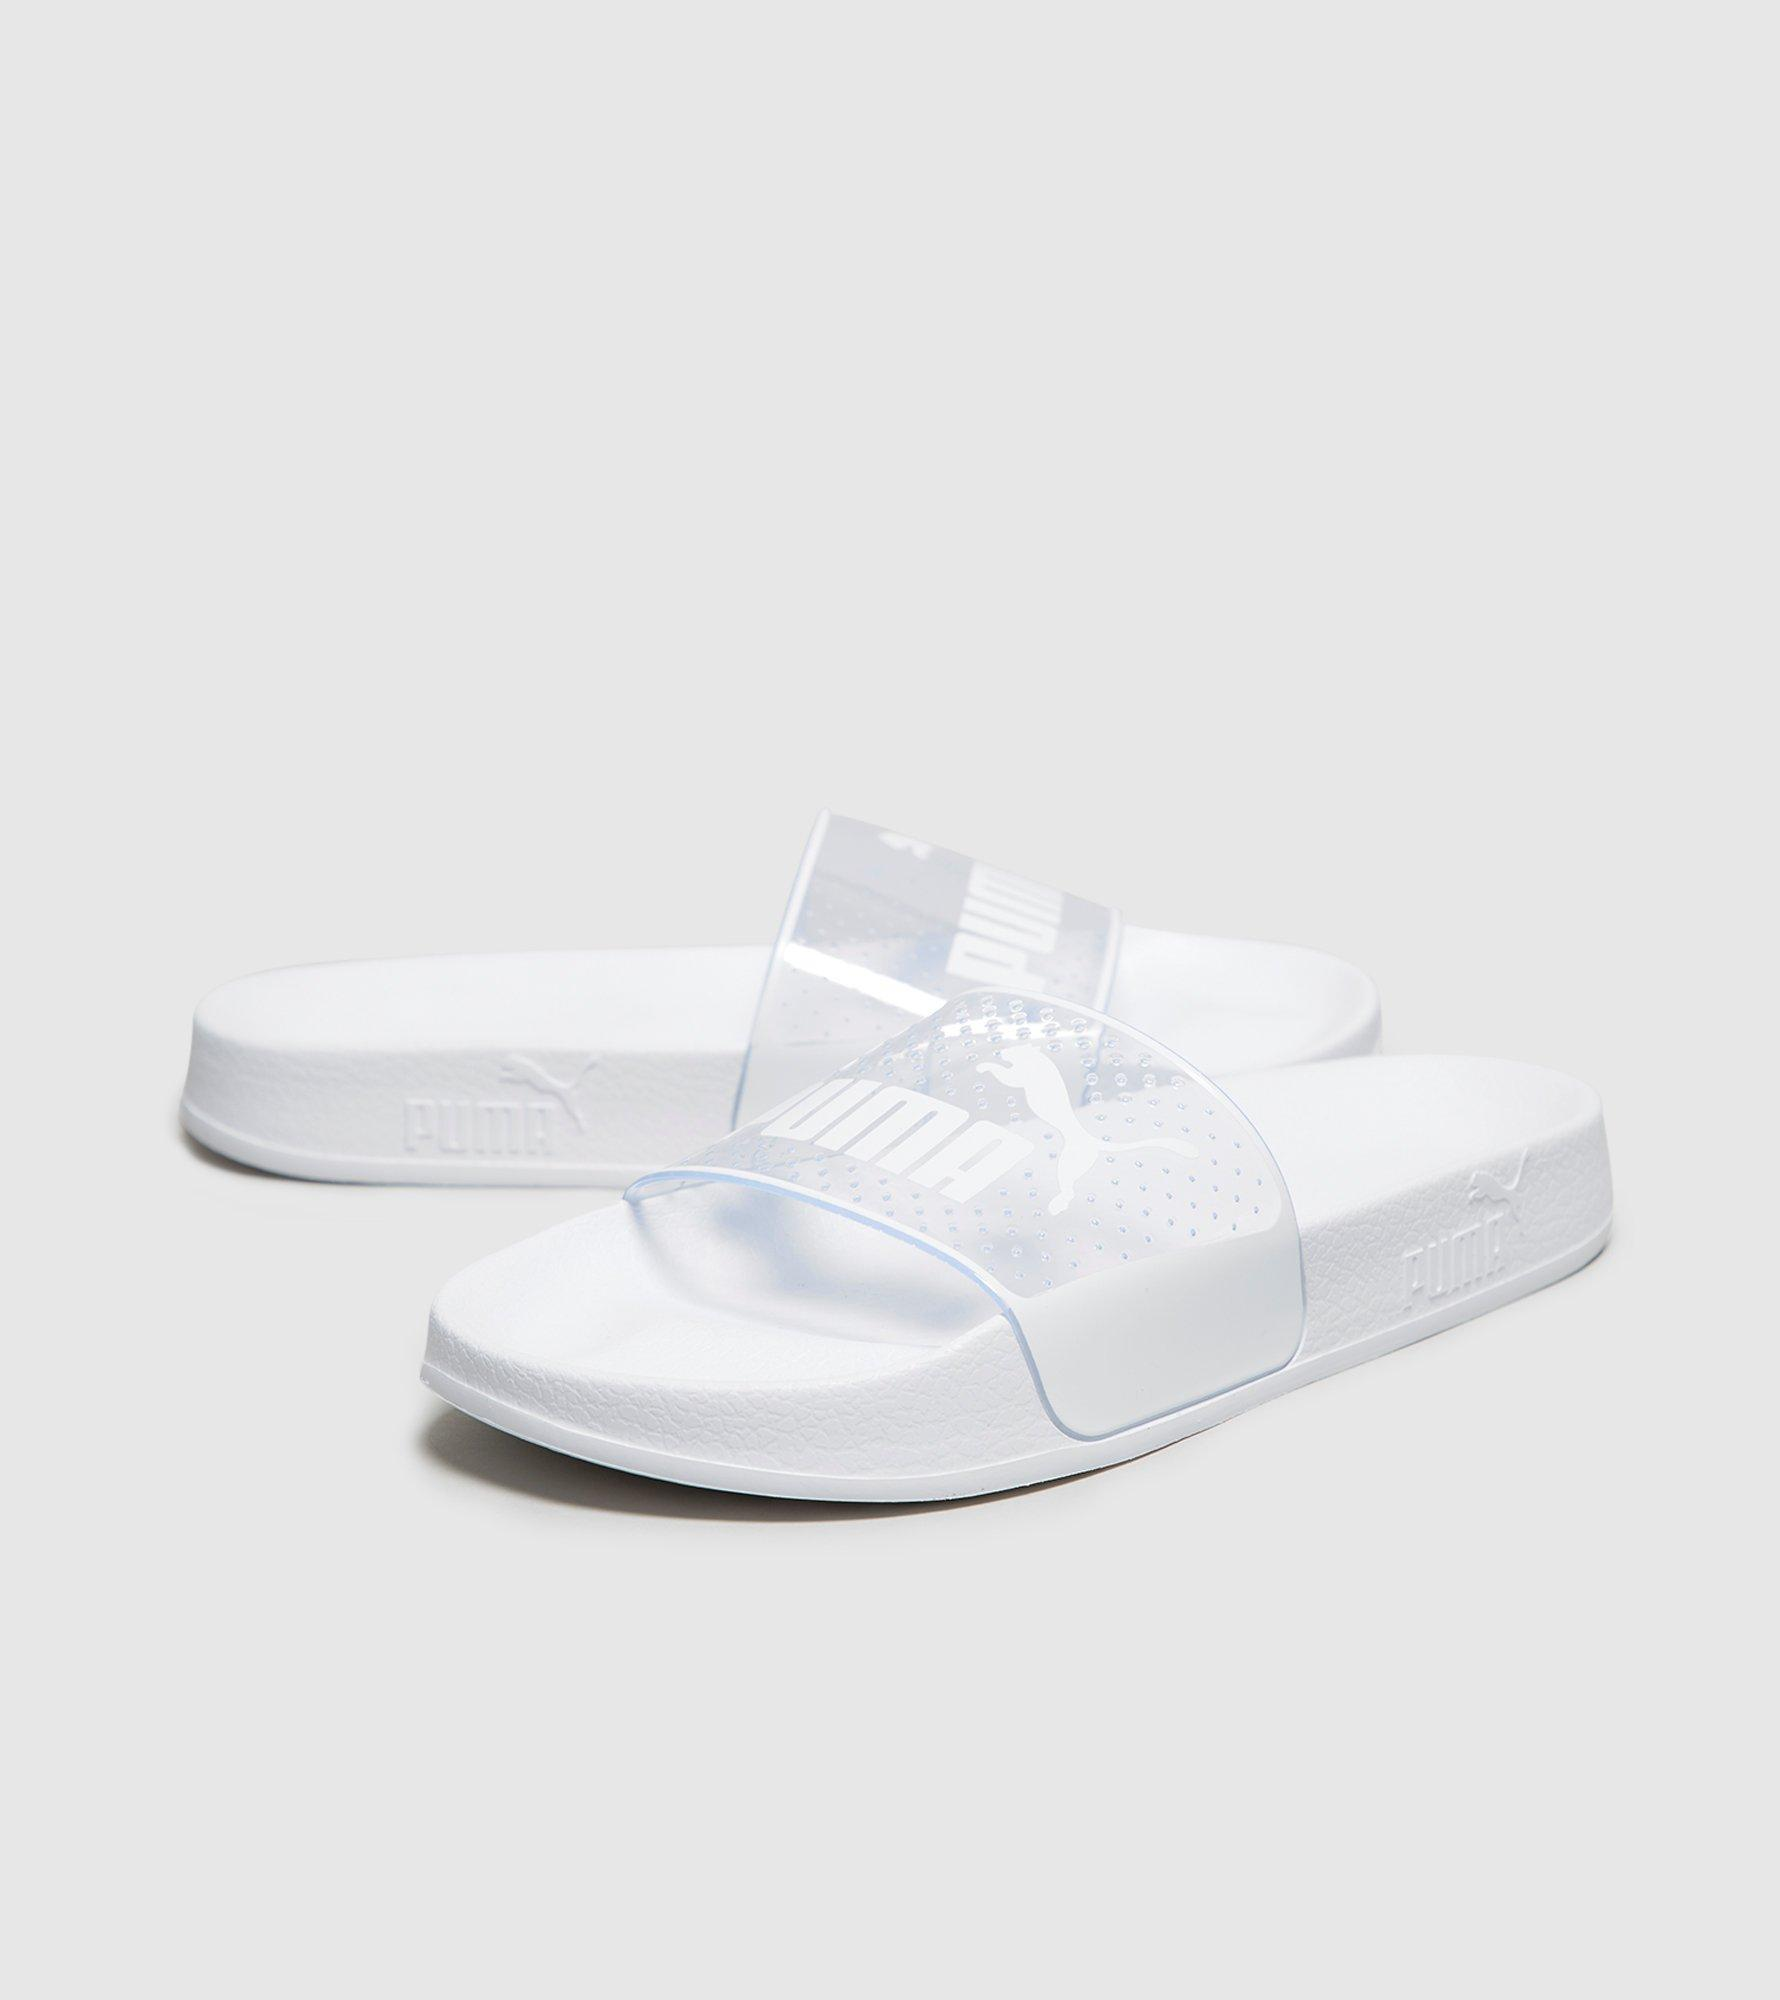 PUMA Leadcat Jelly Slides Women s in White - Lyst 304aa5abc